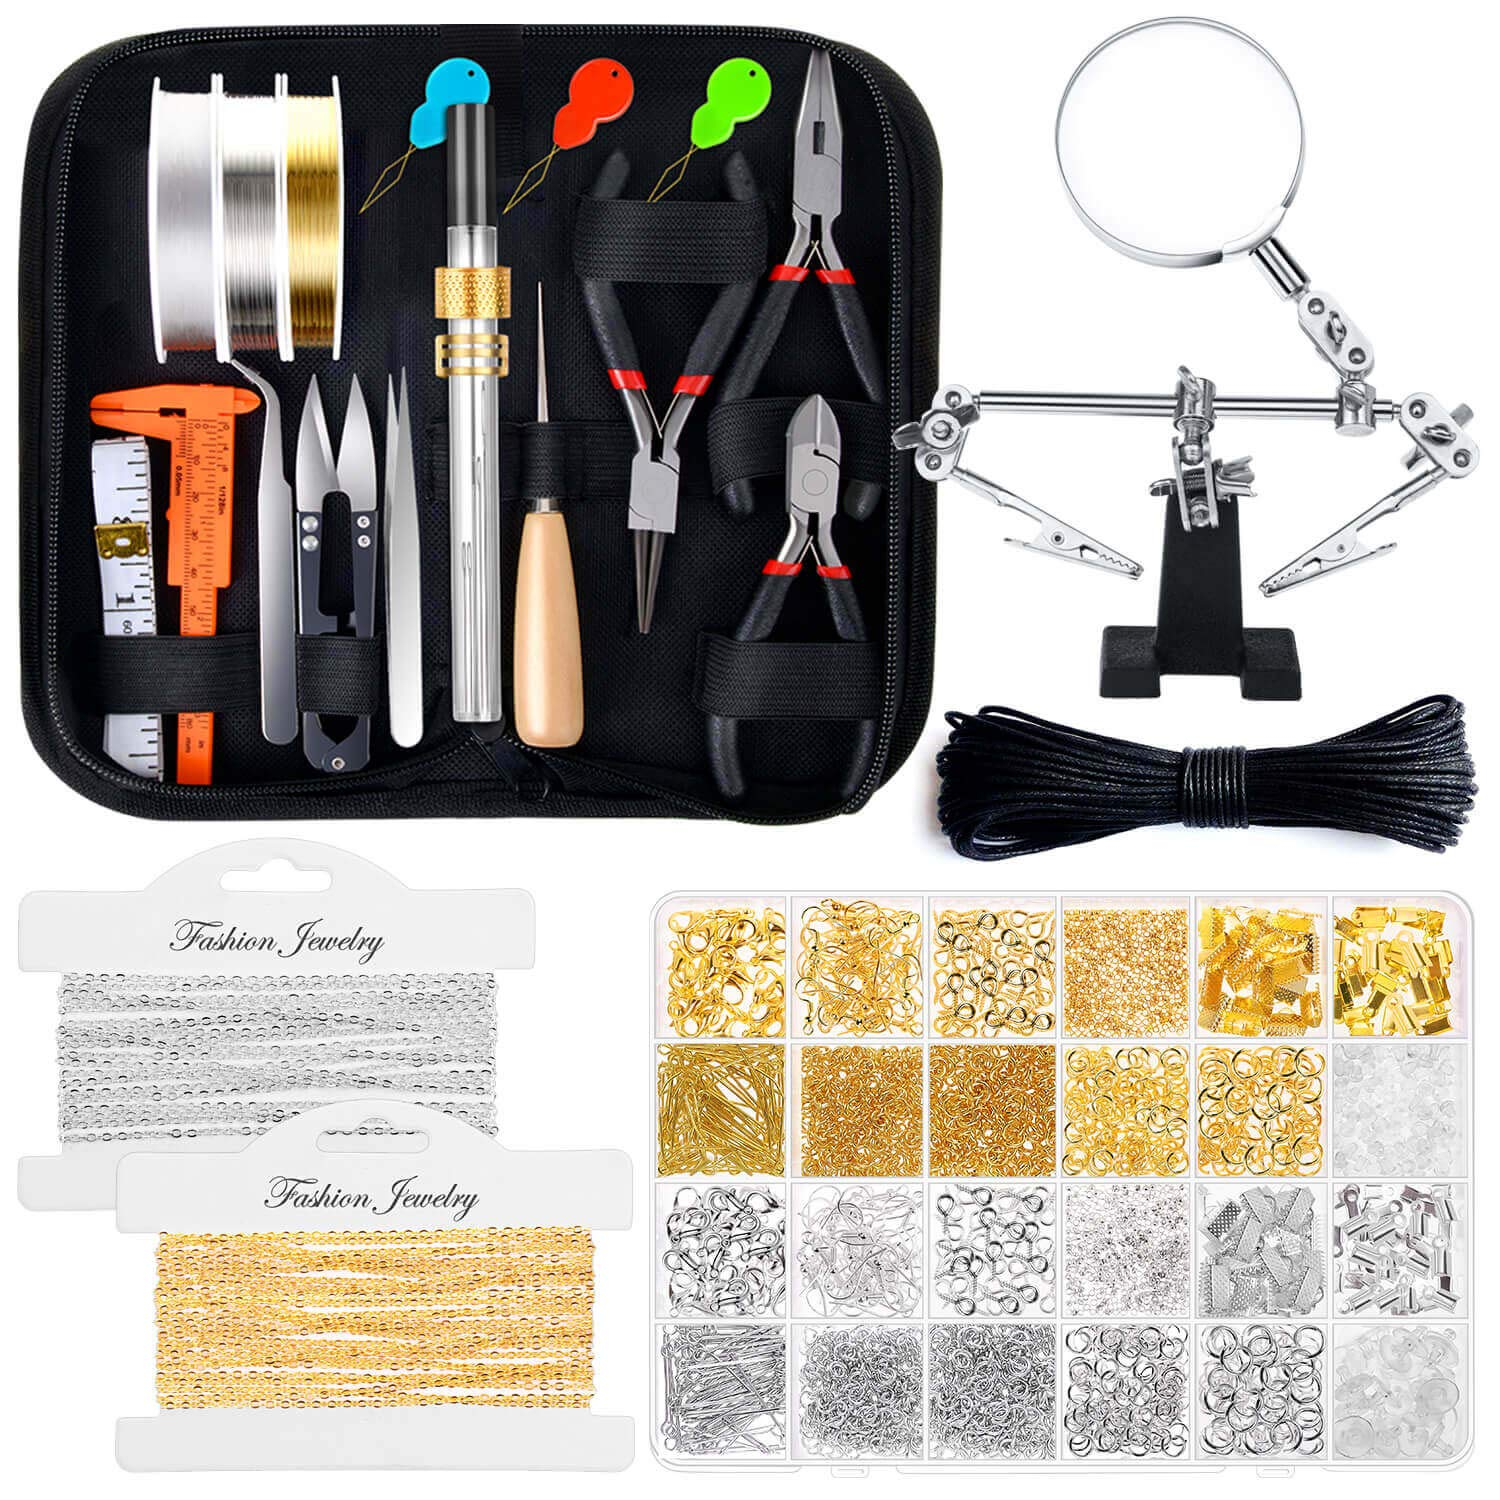 Jewelry Making Kits for Adults, Shynek Jewelry Making Supplies Kit with Jewelry Making Tools, Earring Charms, Jewelry Wires, Jewelry Findings and Helping Hands for Jewelry Making and Repair